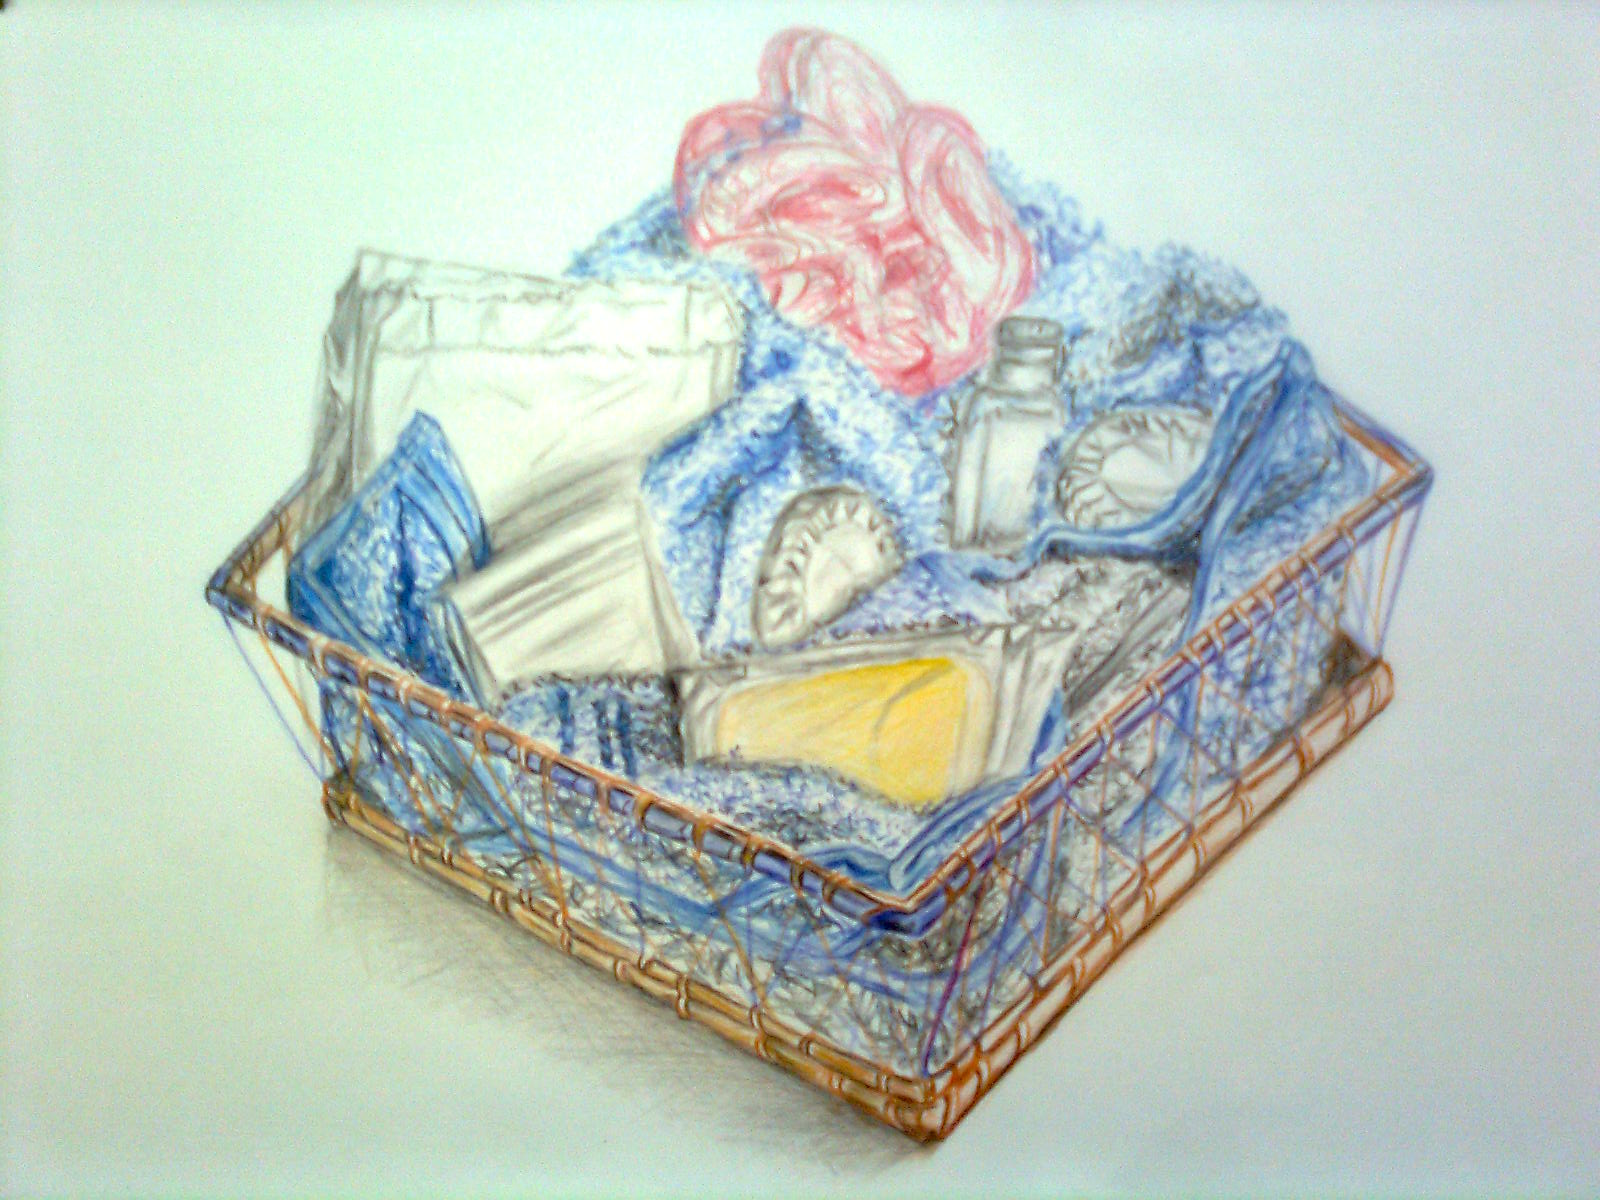 New Beginnings: Pencil crayon drawing of a soap composition